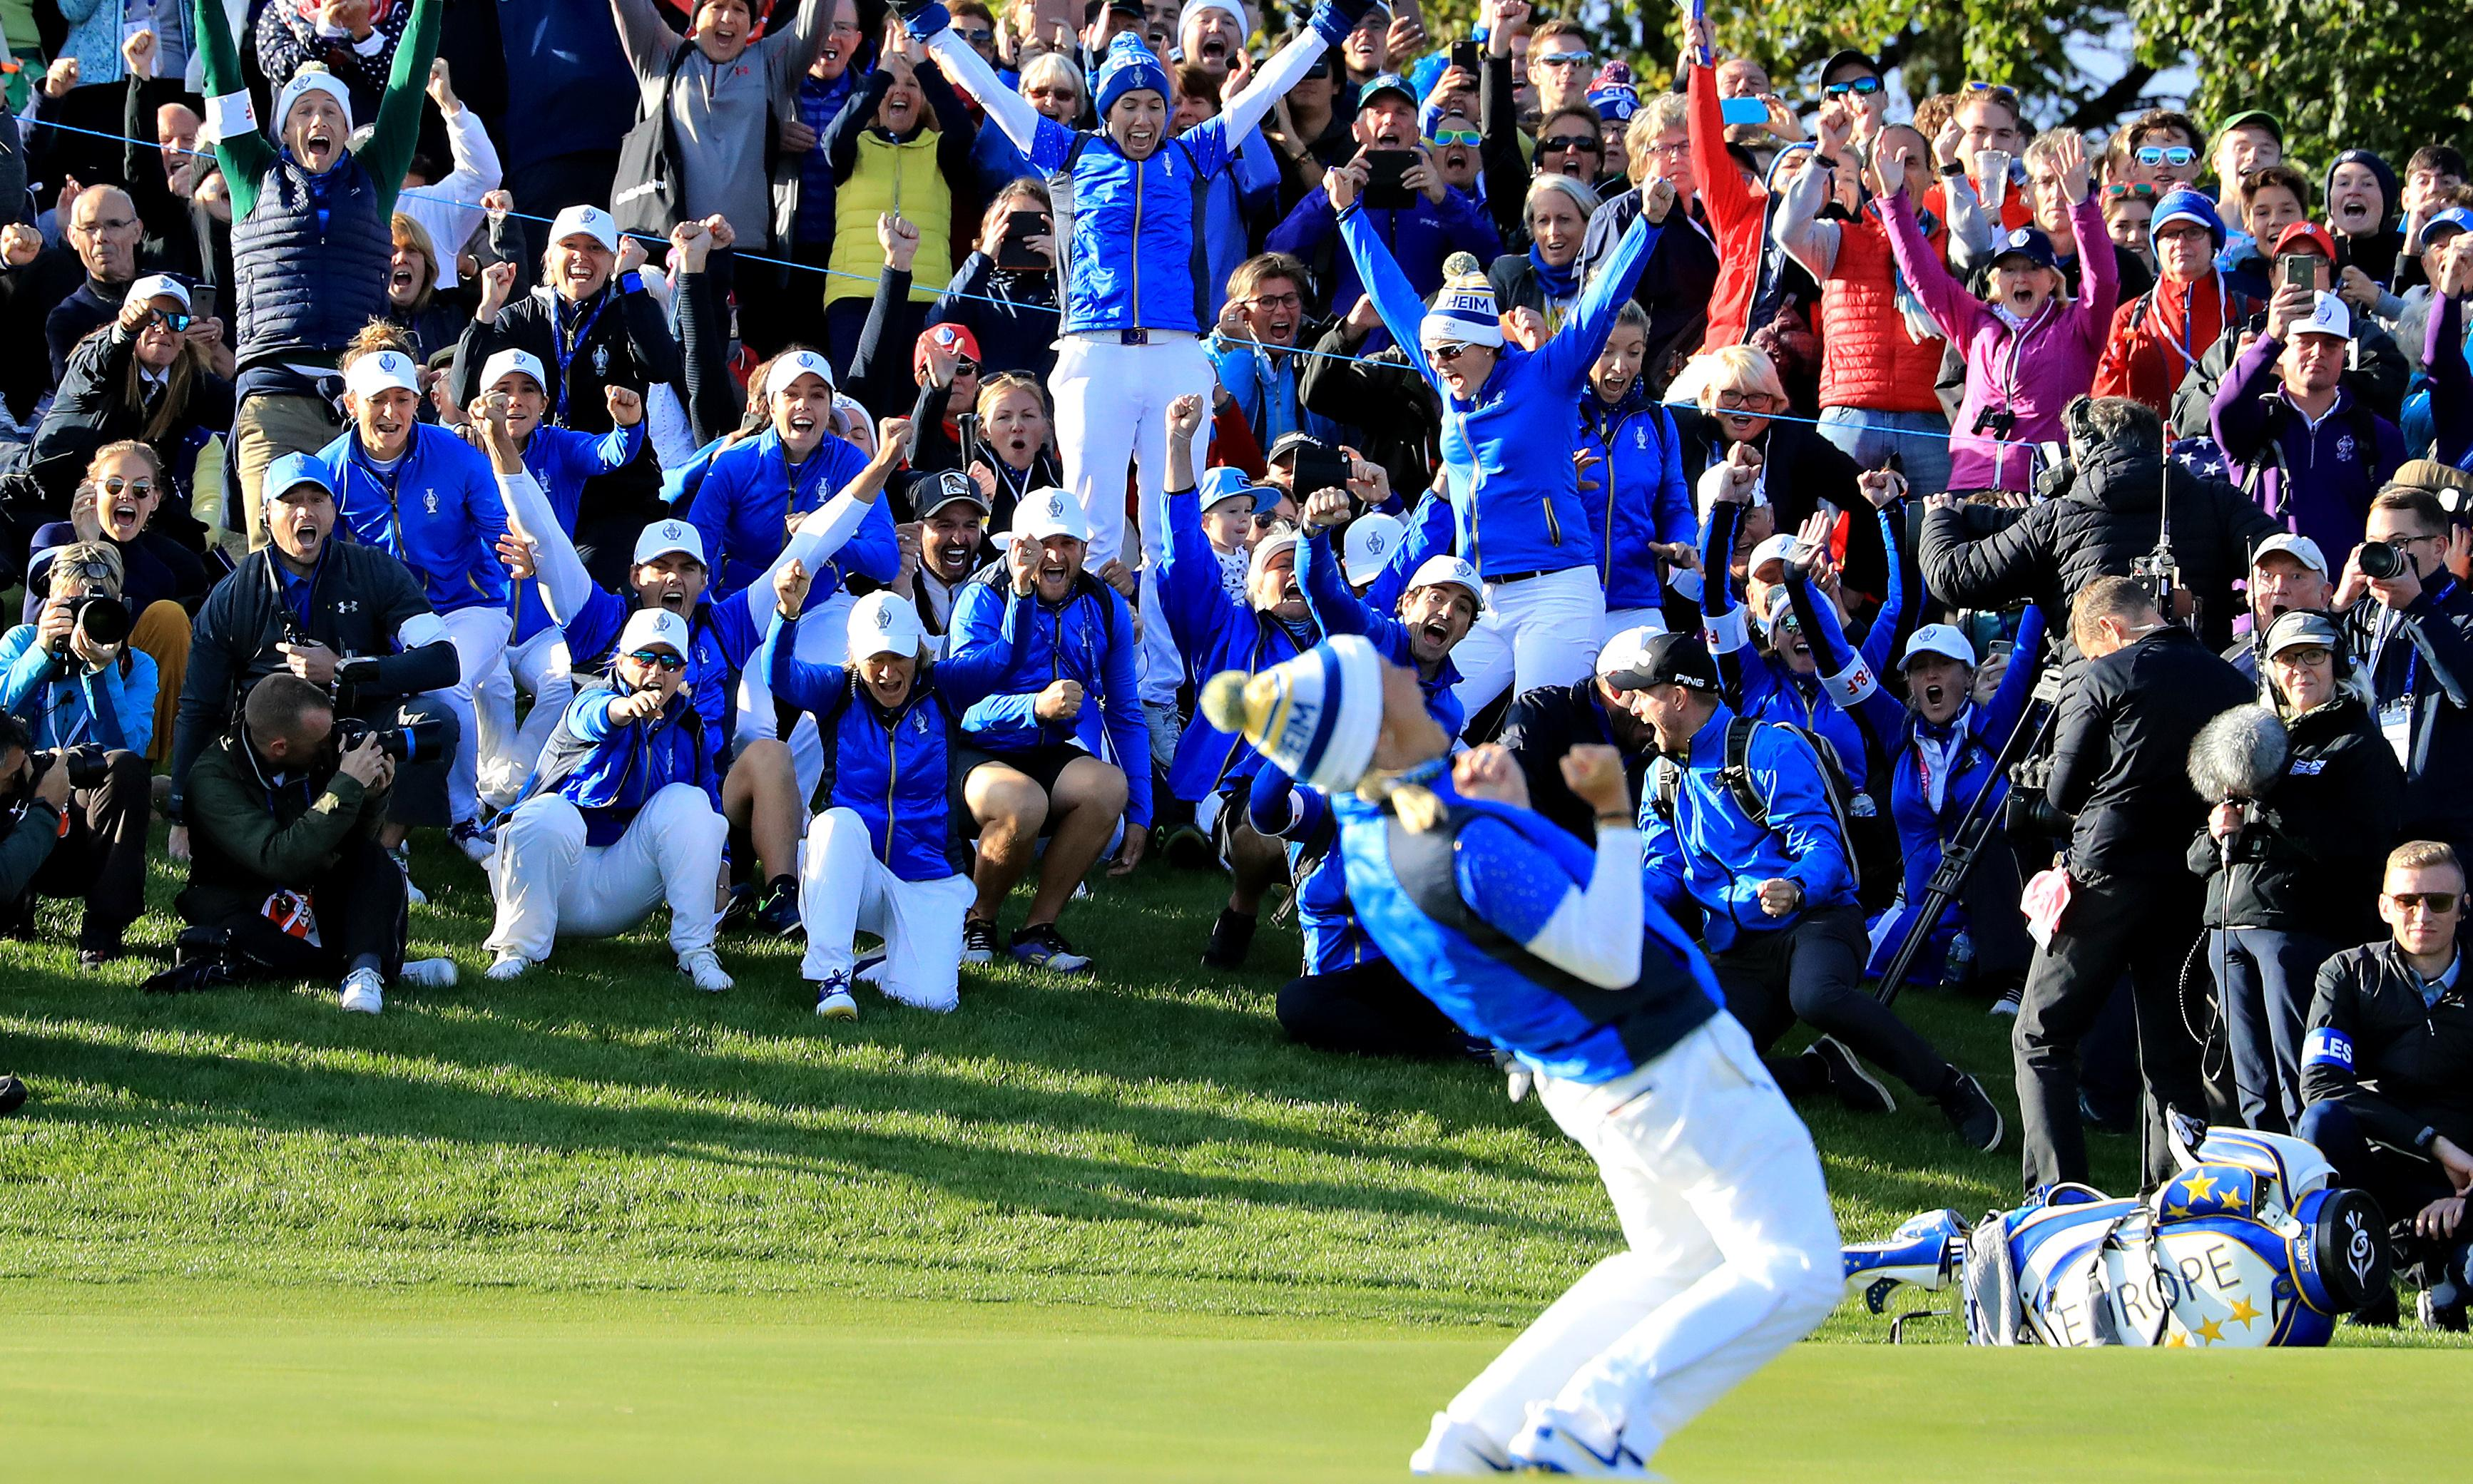 Suzann Pettersen makes putt on final green to win Solheim Cup for Europe